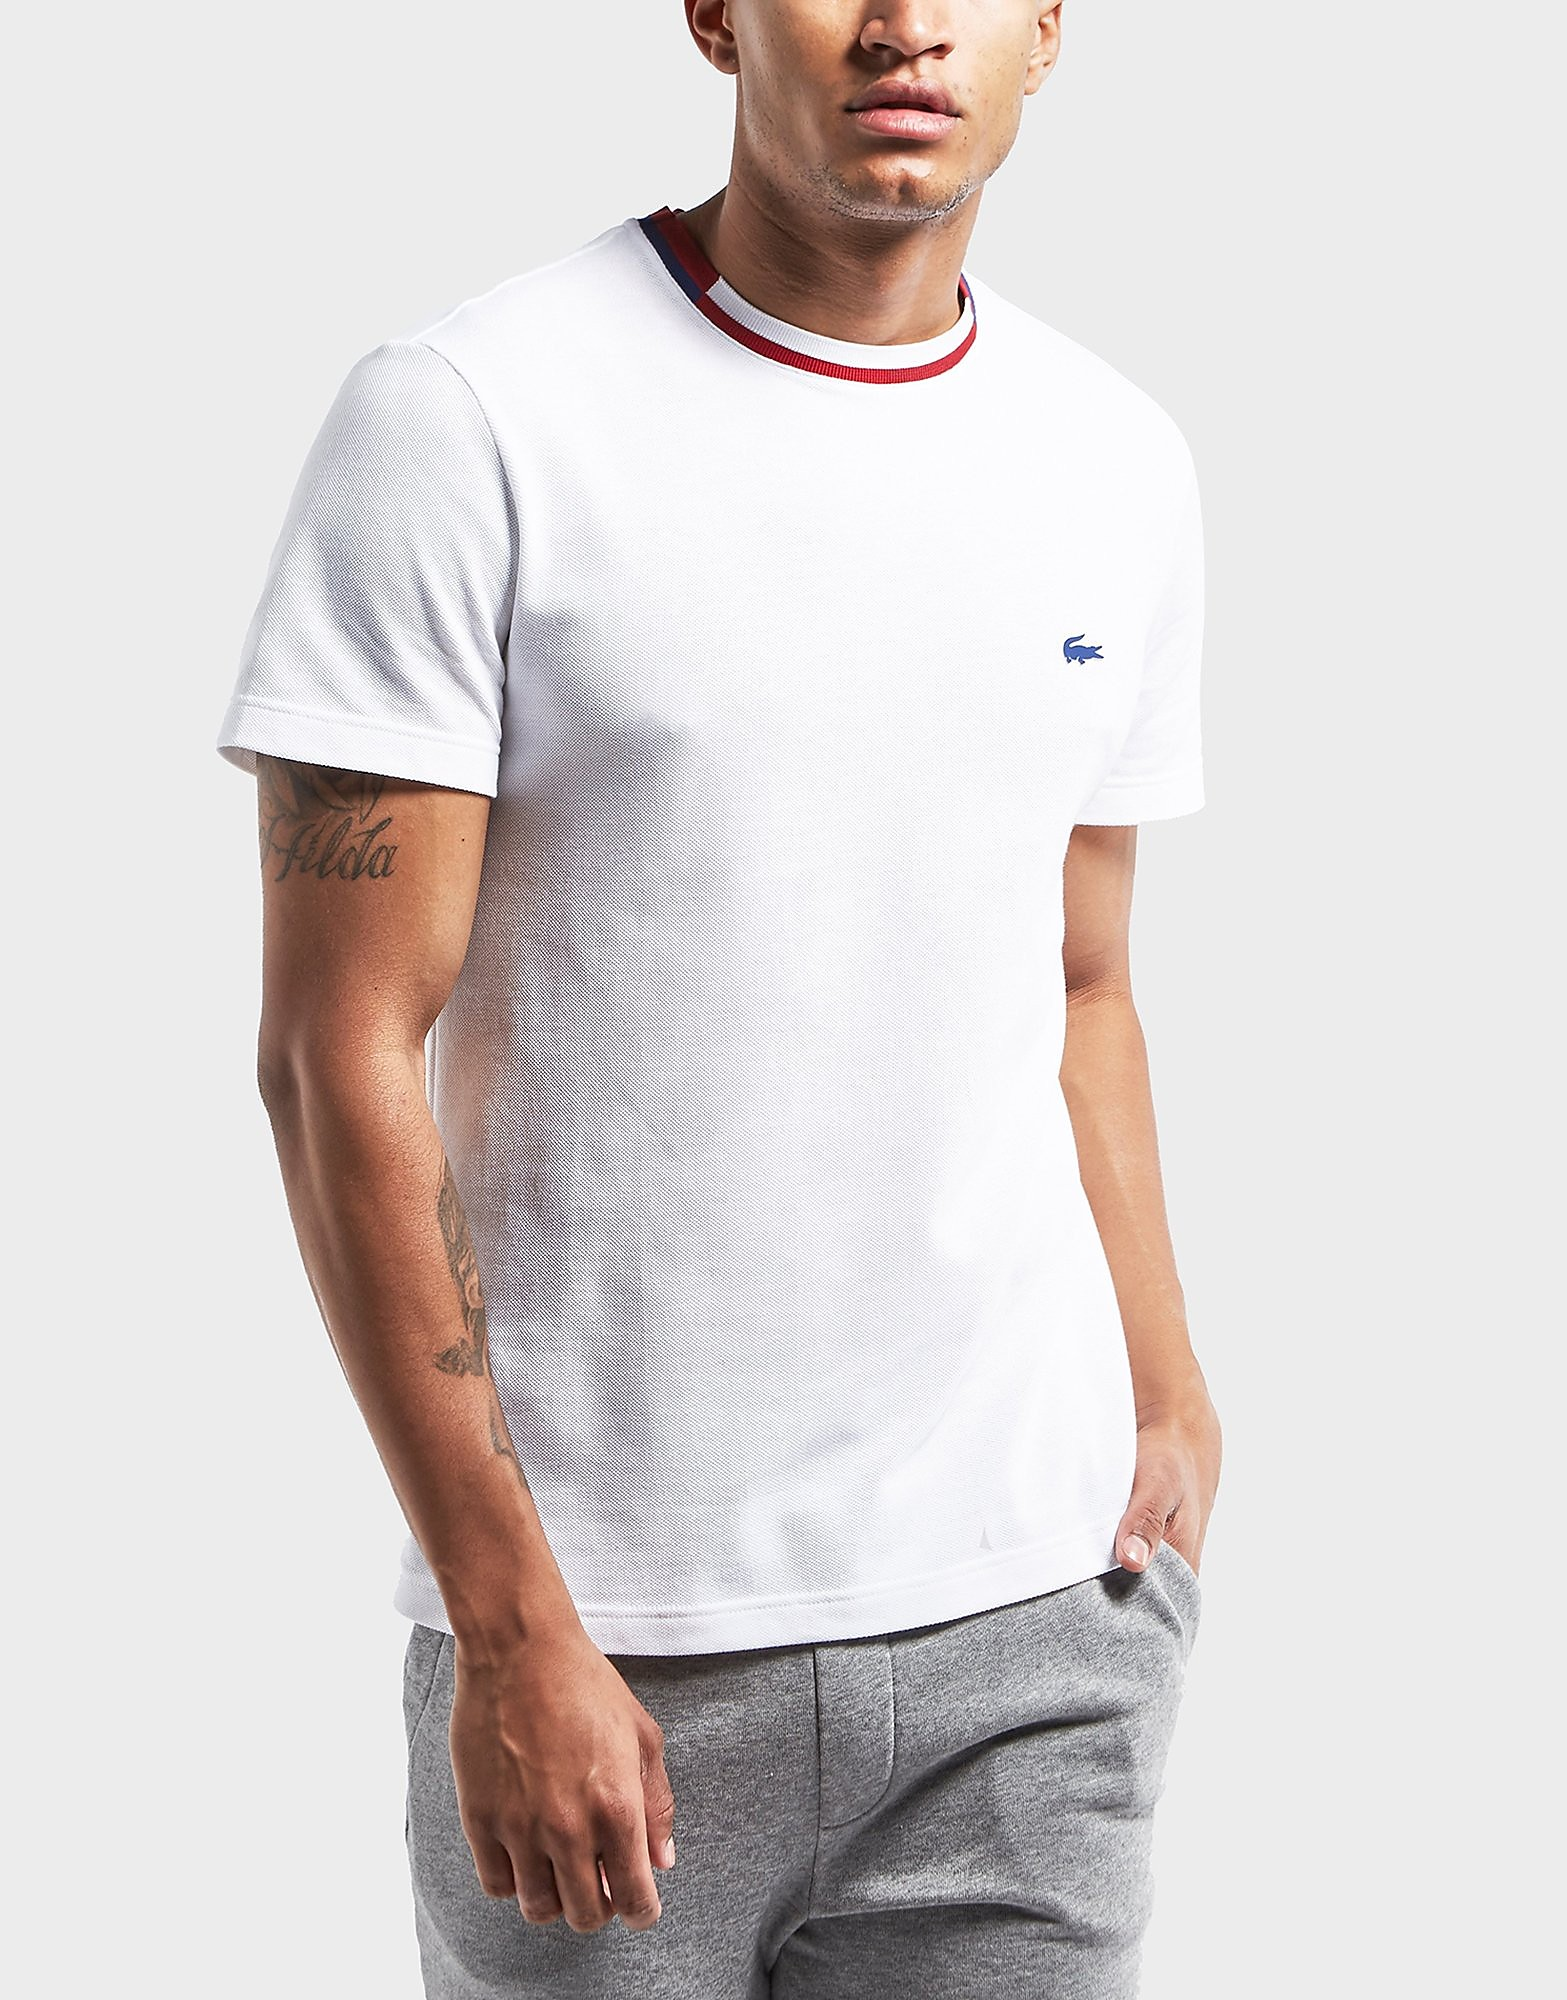 Lacoste Rubber Cros Short Sleeve T-Shirt